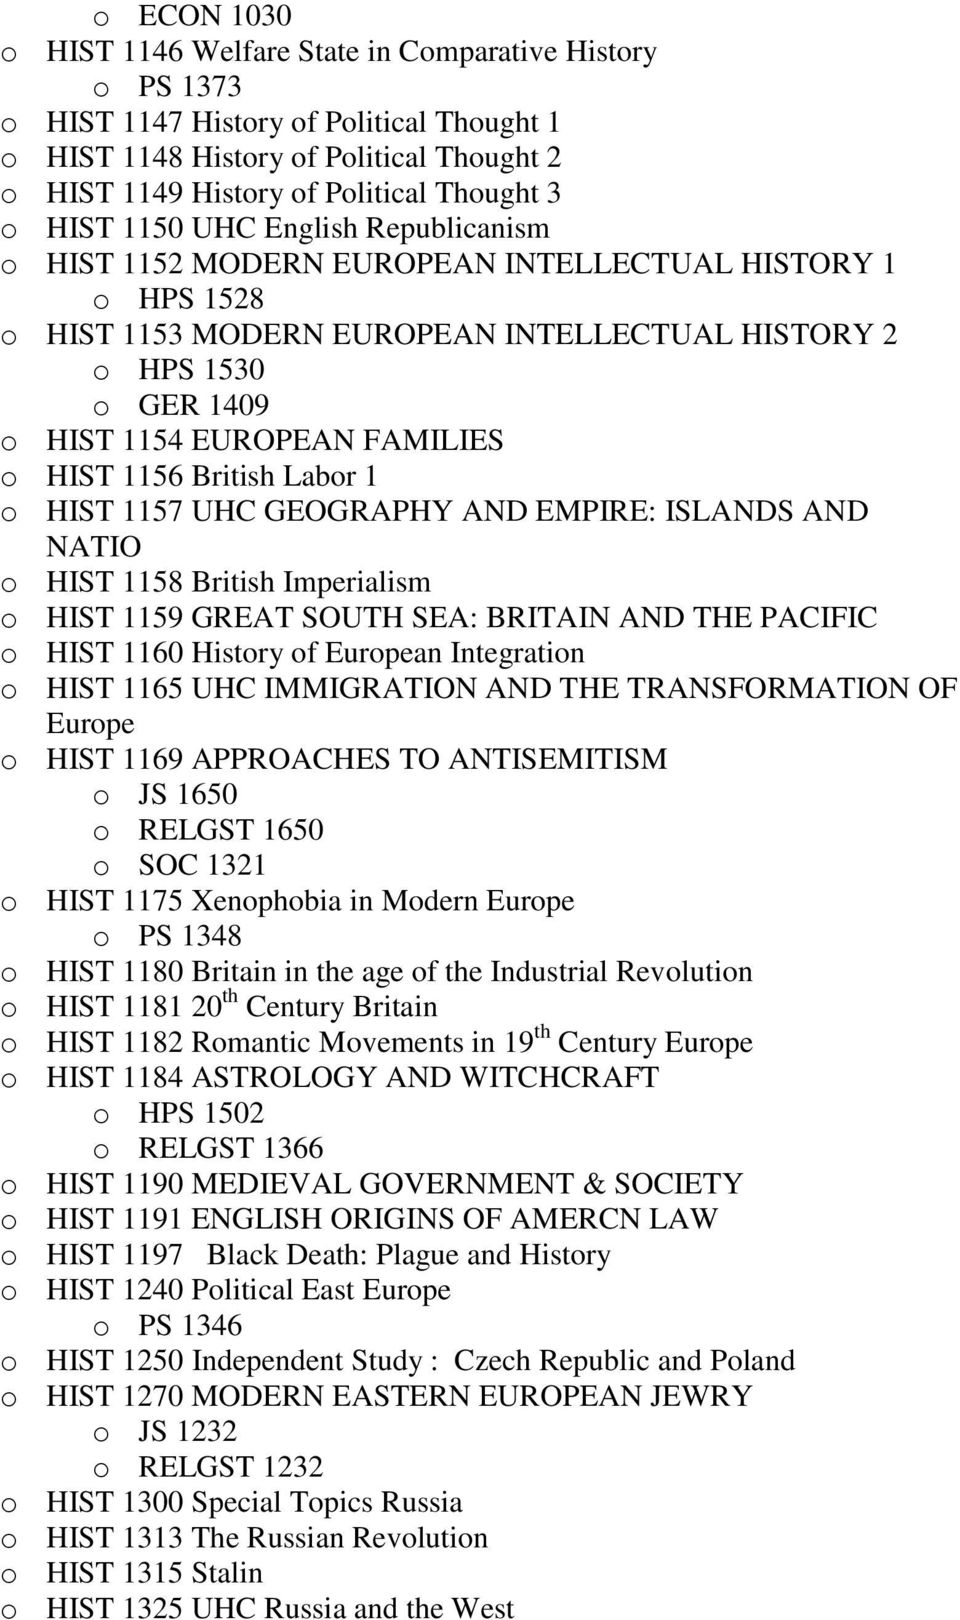 FAMILIES o HIST 1156 British Labor 1 o HIST 1157 UHC GEOGRAPHY AND EMPIRE: ISLANDS AND NATIO o HIST 1158 British Imperialism o HIST 1159 GREAT SOUTH SEA: BRITAIN AND THE PACIFIC o HIST 1160 History